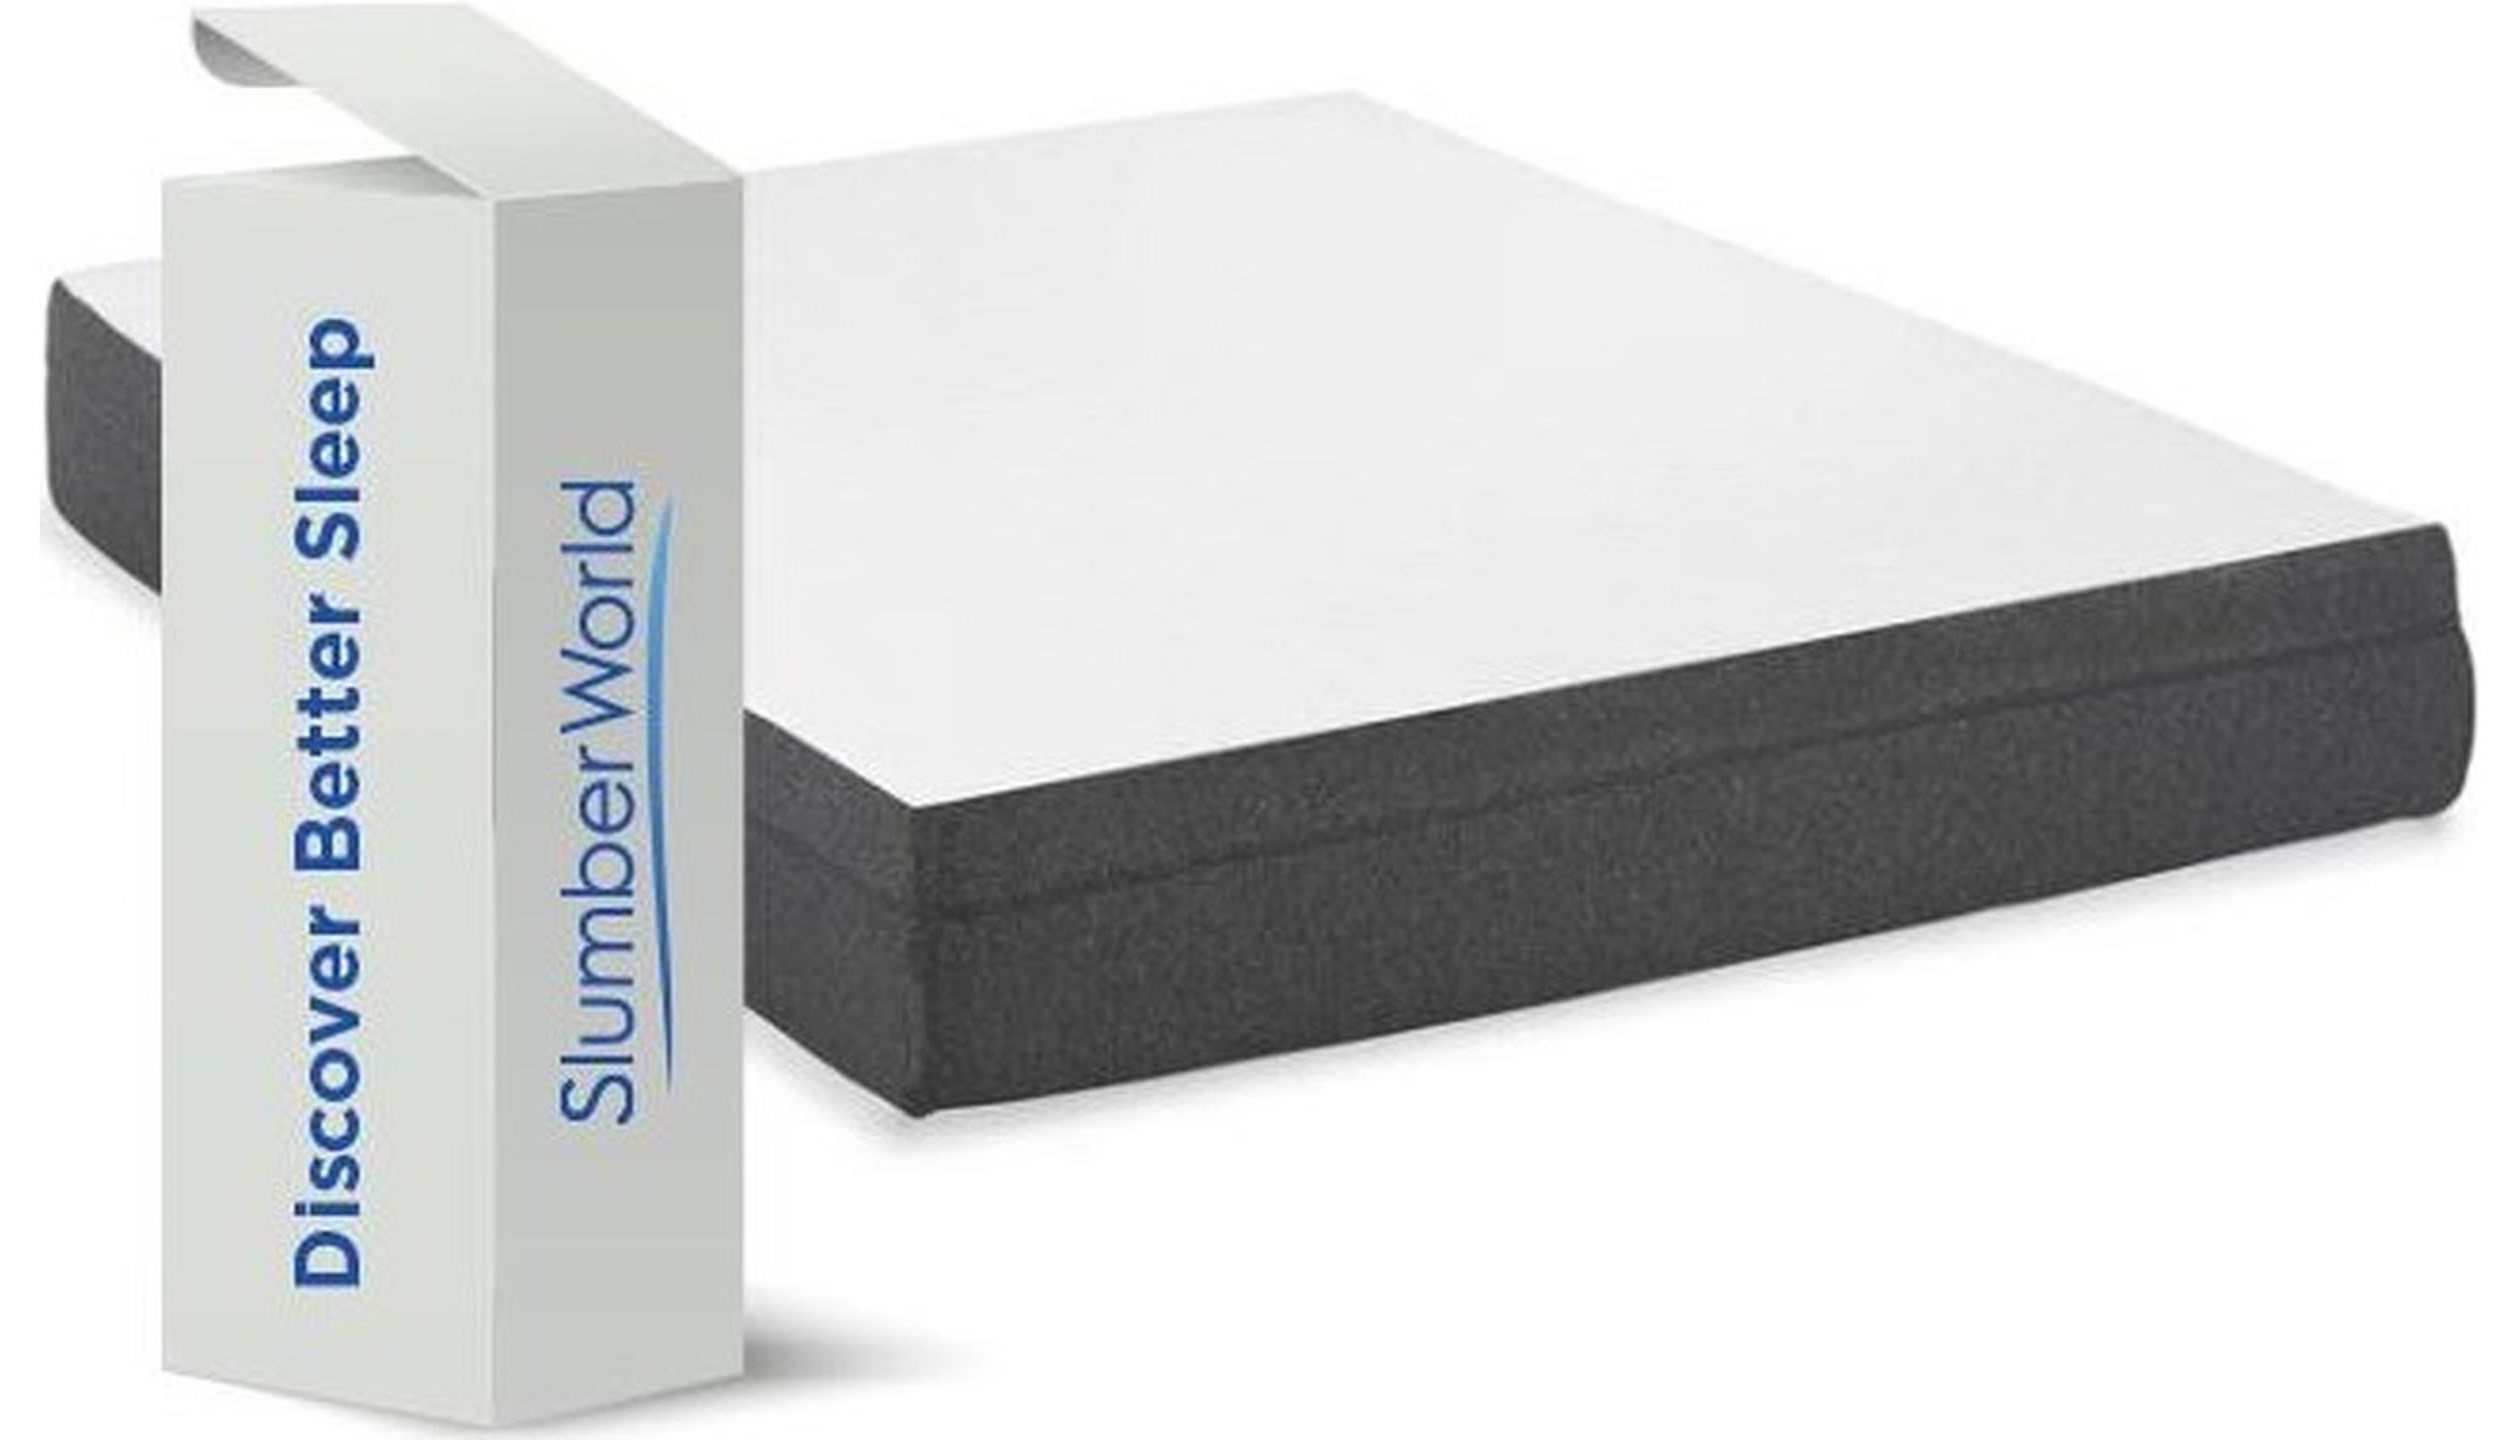 SB10 SB10 Full Hybrid Mattress in a Box by South Bay International at C. S. Wo & Sons Hawaii